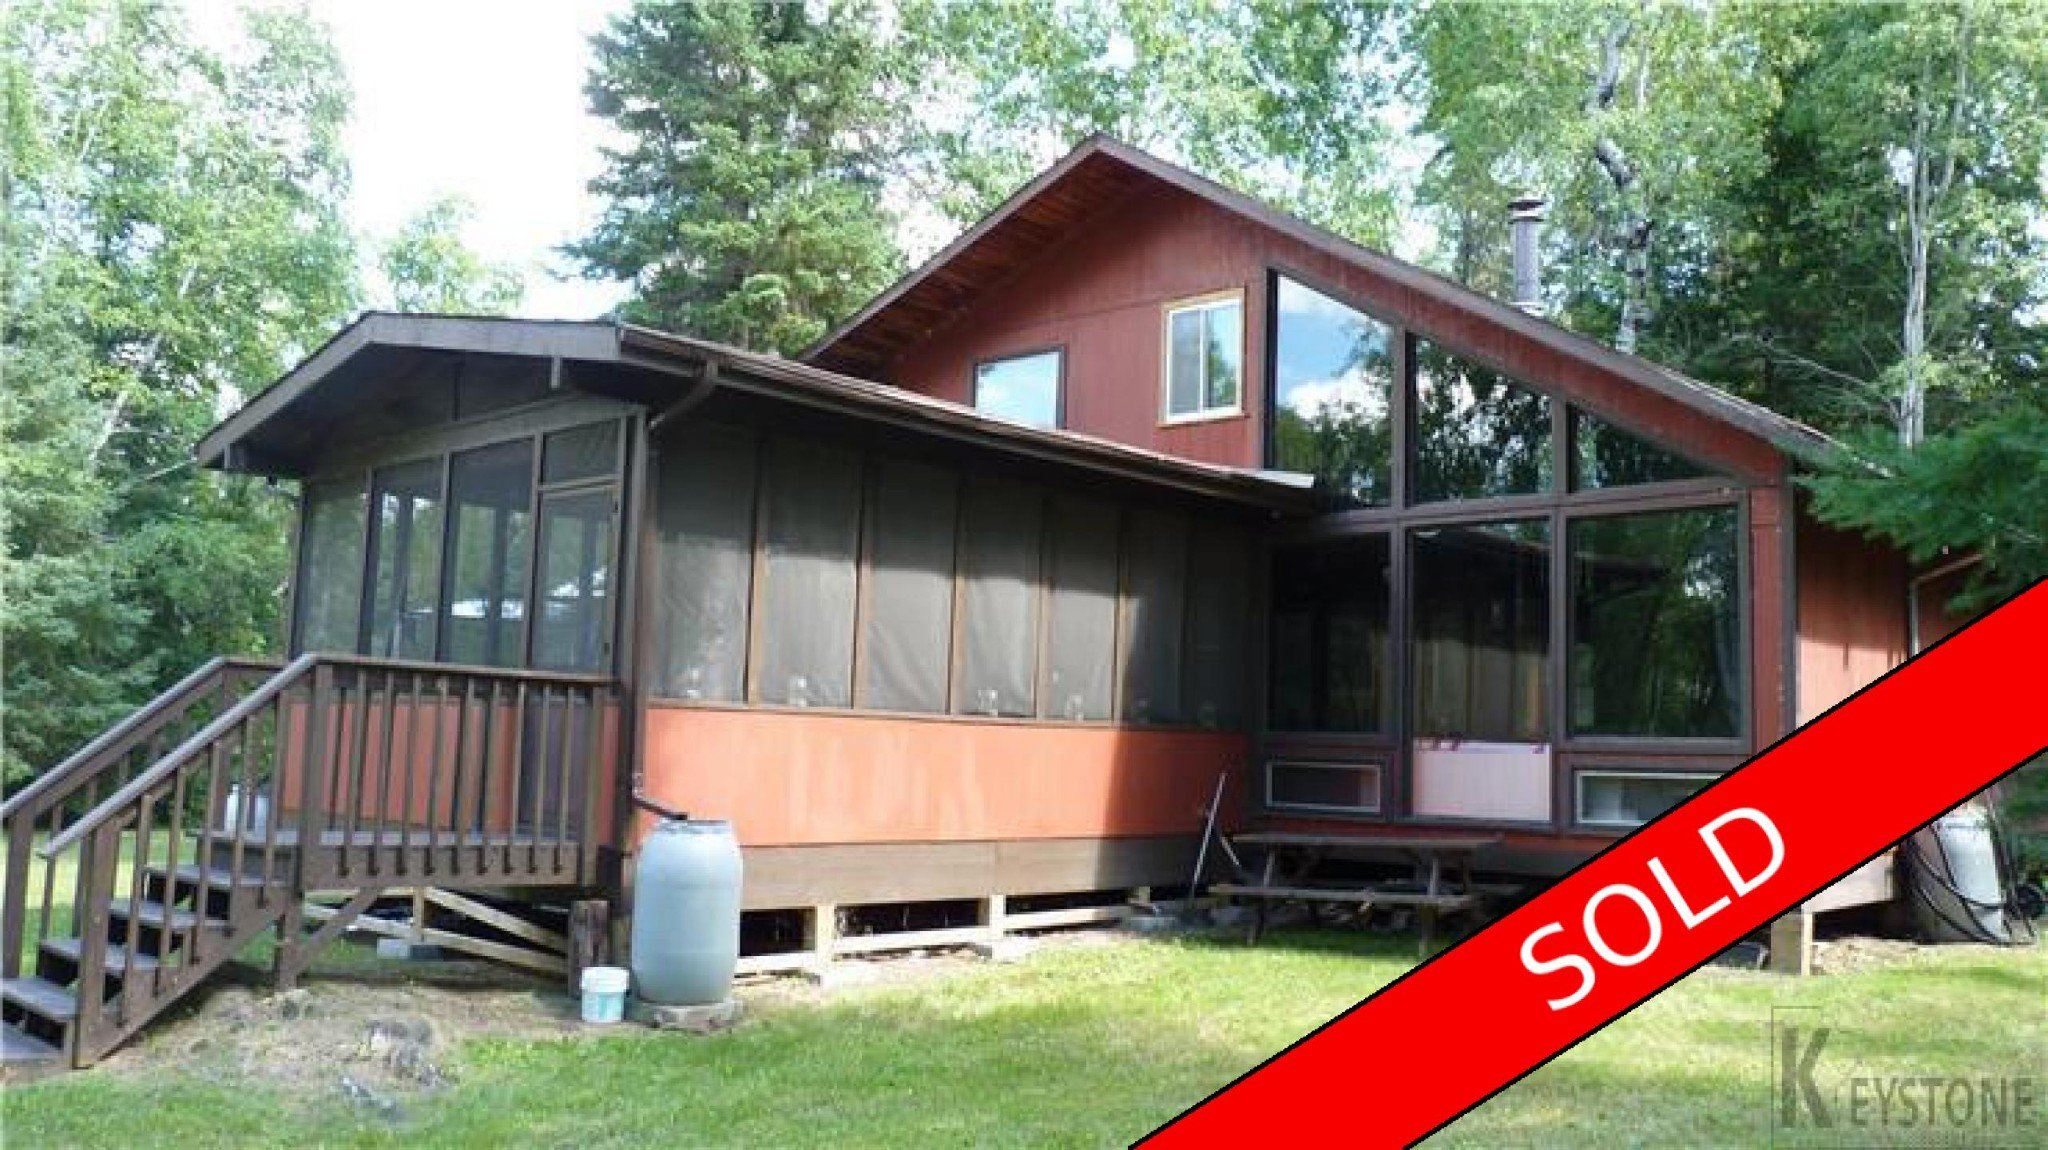 Main Photo:  in Wanipigow, MB R0E1A0: House for sale : MLS®# 1721662